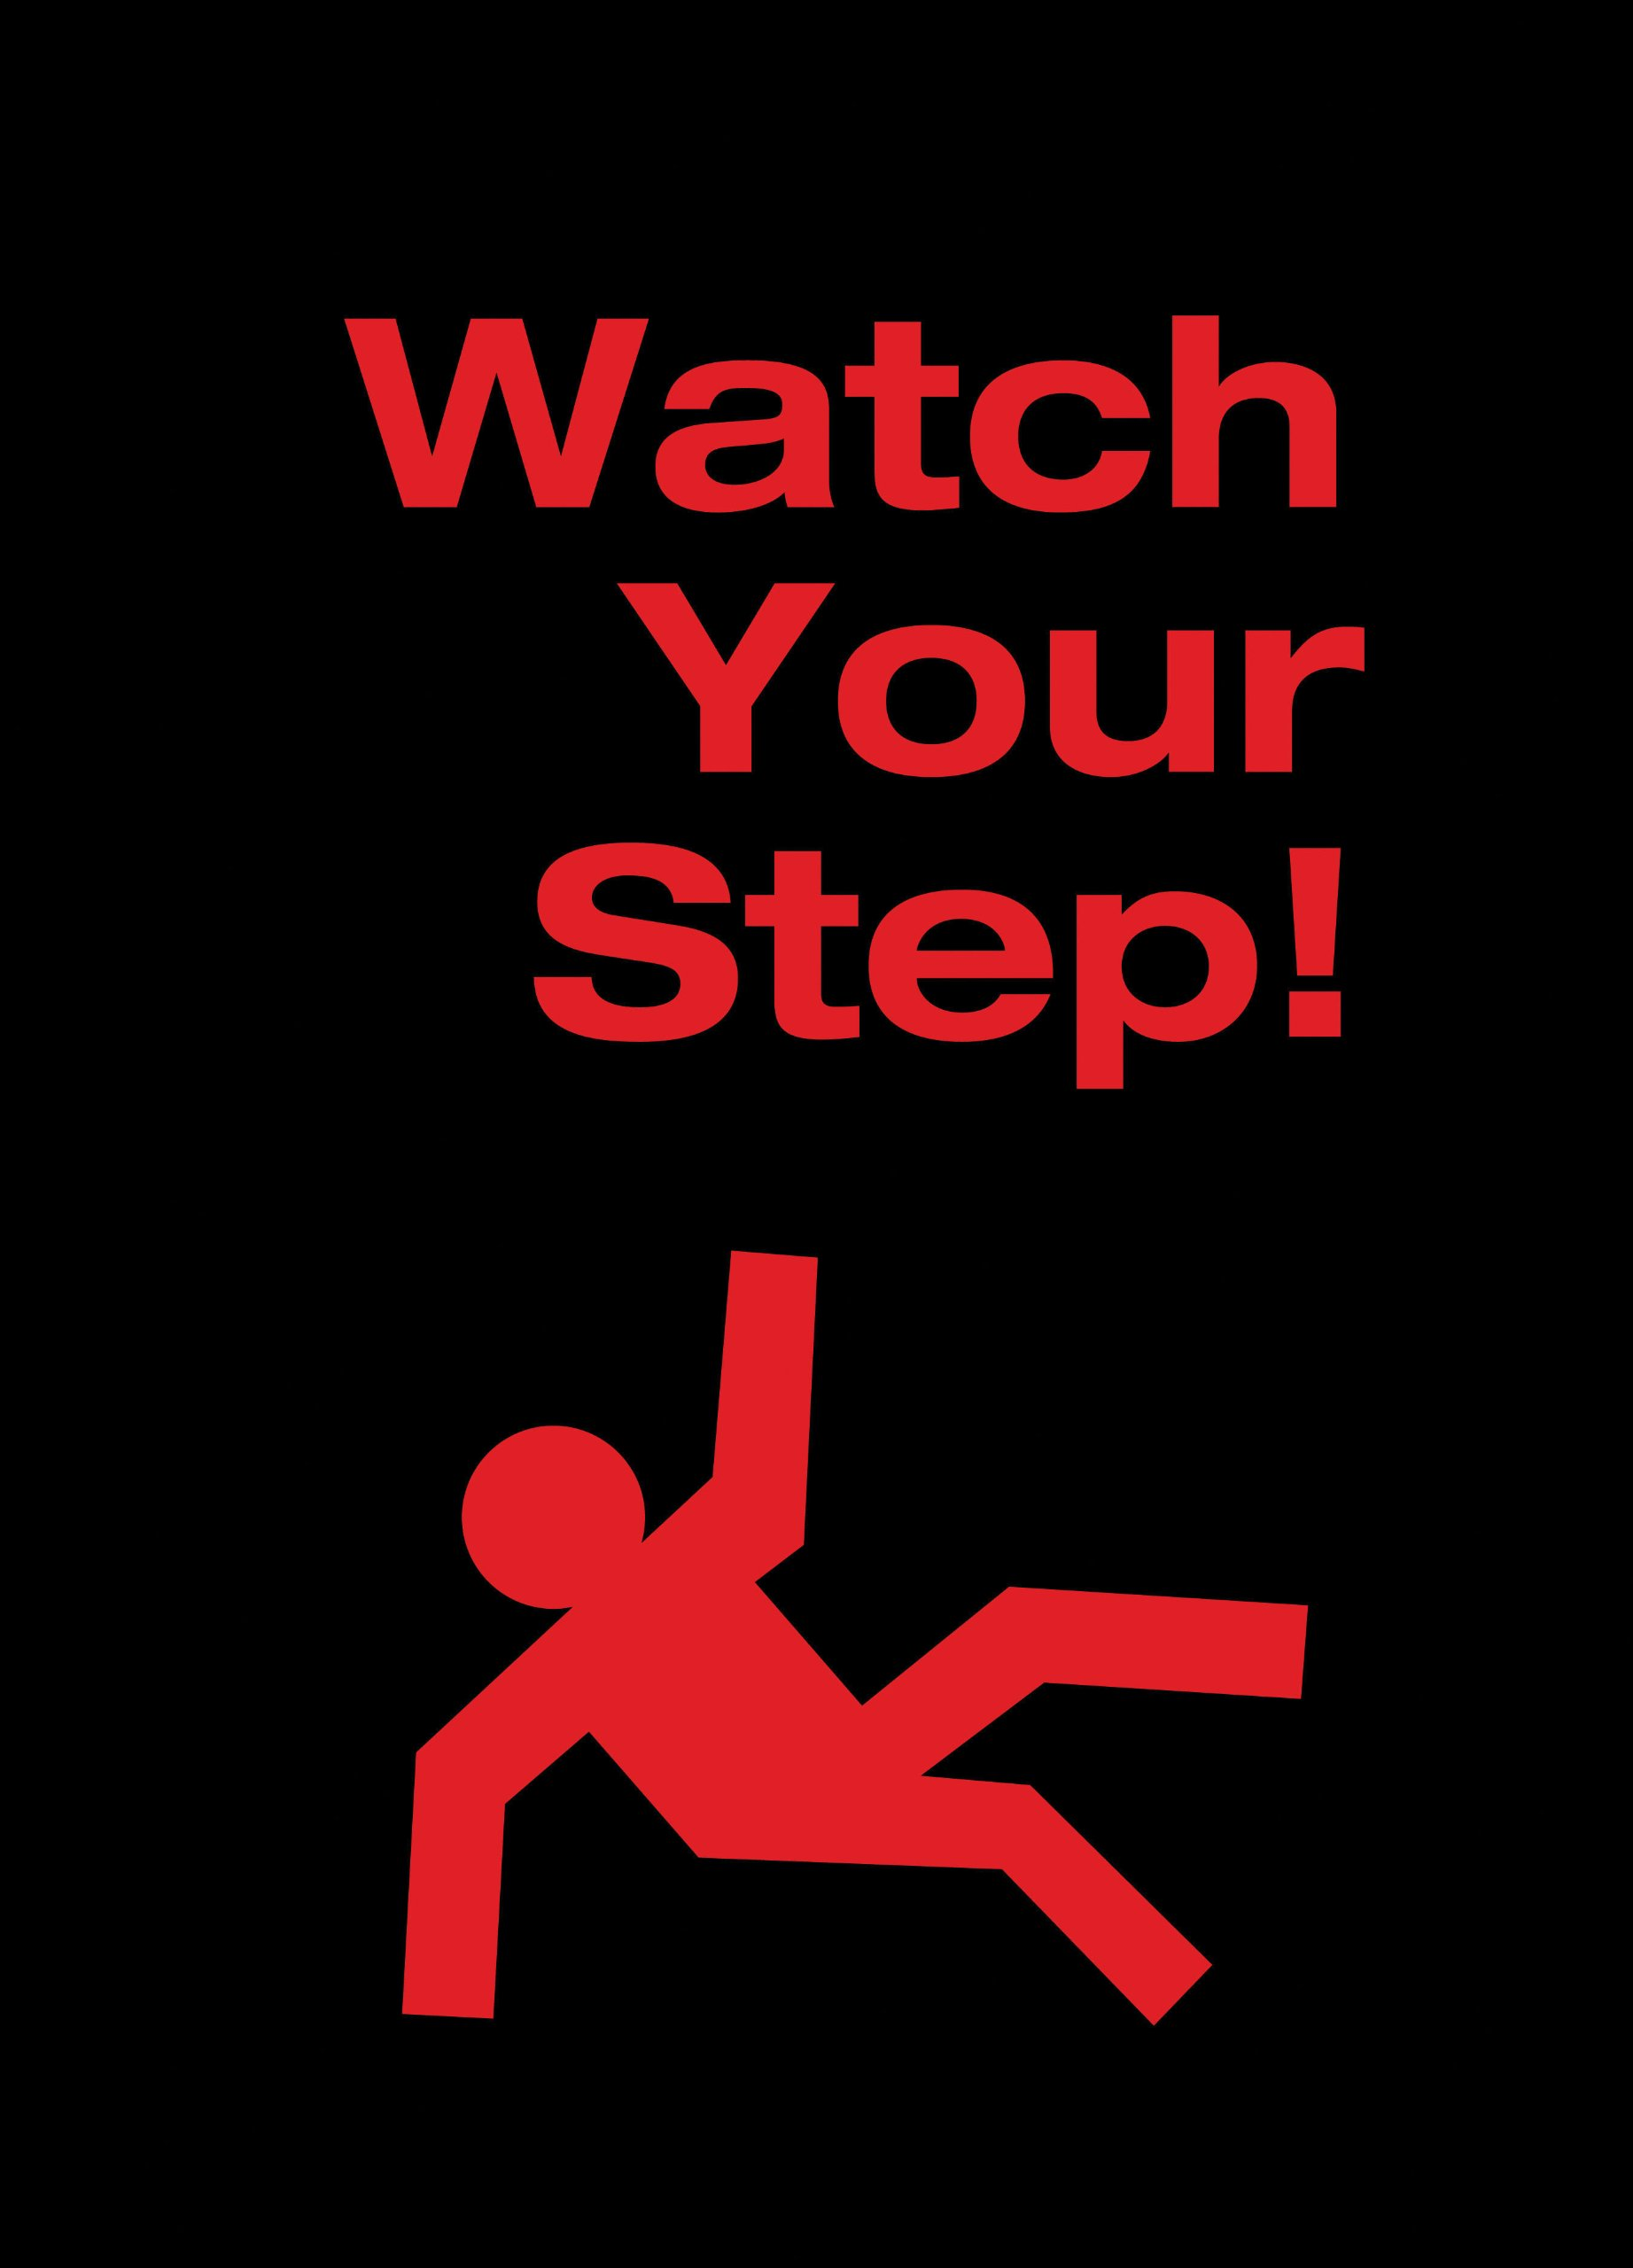 NoTrax 194 Safety Message Floor Mat with Vinyl Backing, ''Watch Yourstep'', 3' Width x 5' Length x 3/8'' Thickness, Black